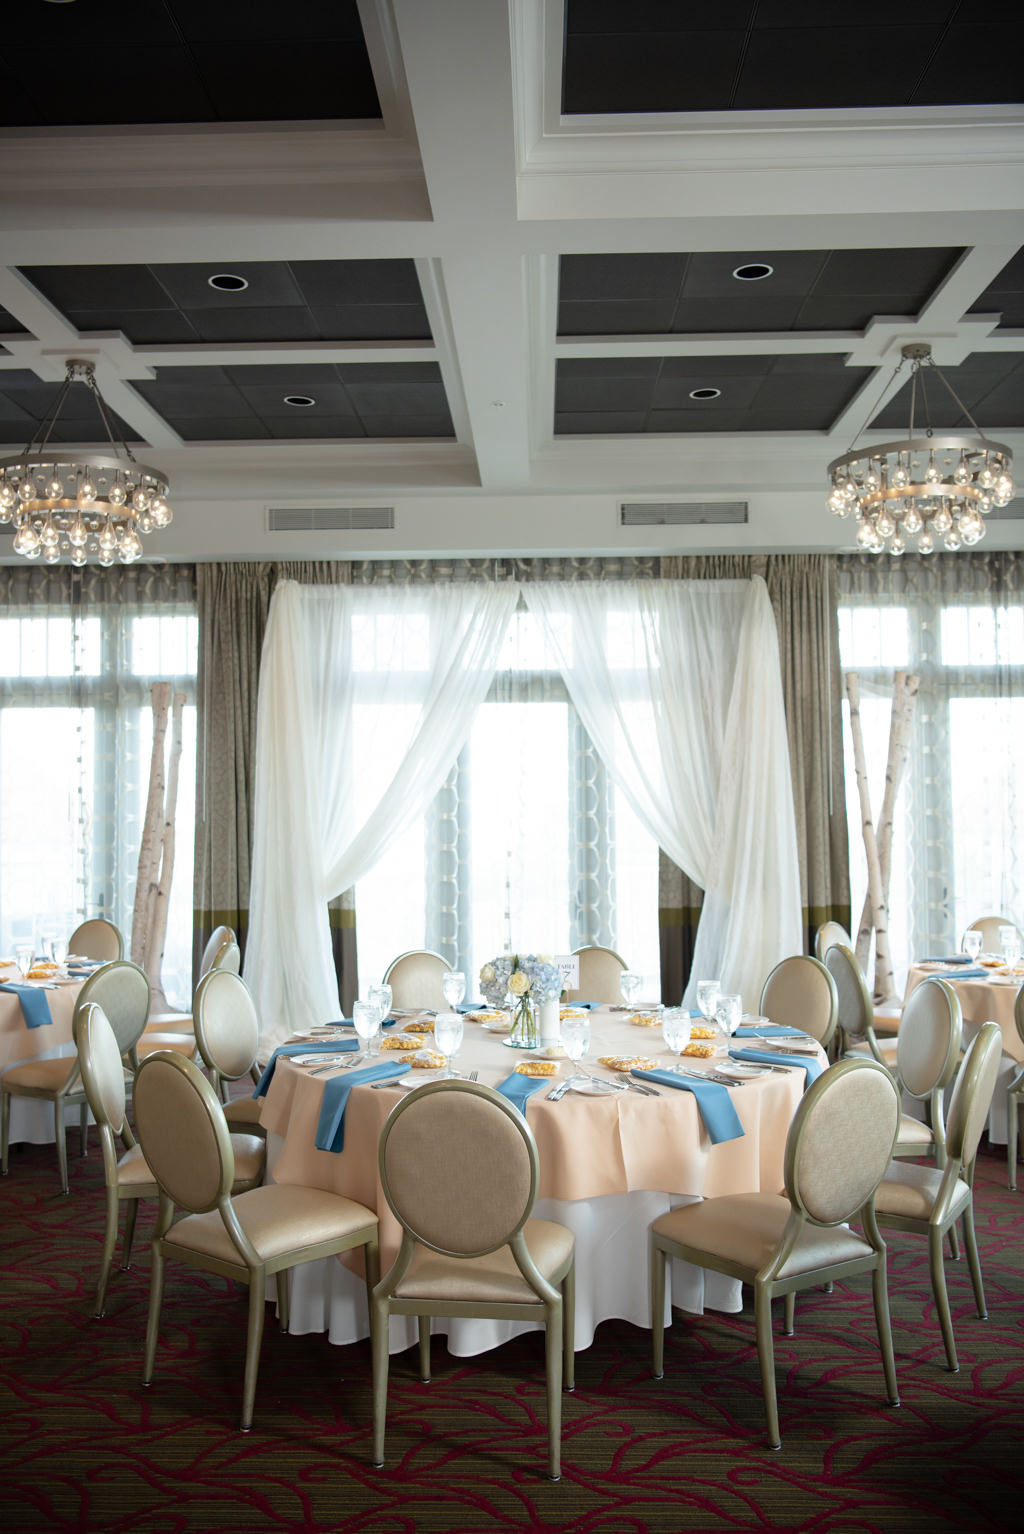 Elegant, Modern Wedding Decor and Reception, Dusty Blue Napkins, Rose Round Table Linens, Gold Accents   Downtown St. Pete Boutique Hotel and Wedding Venue The Birchwood   Wedding Planner Coastal Coordinating